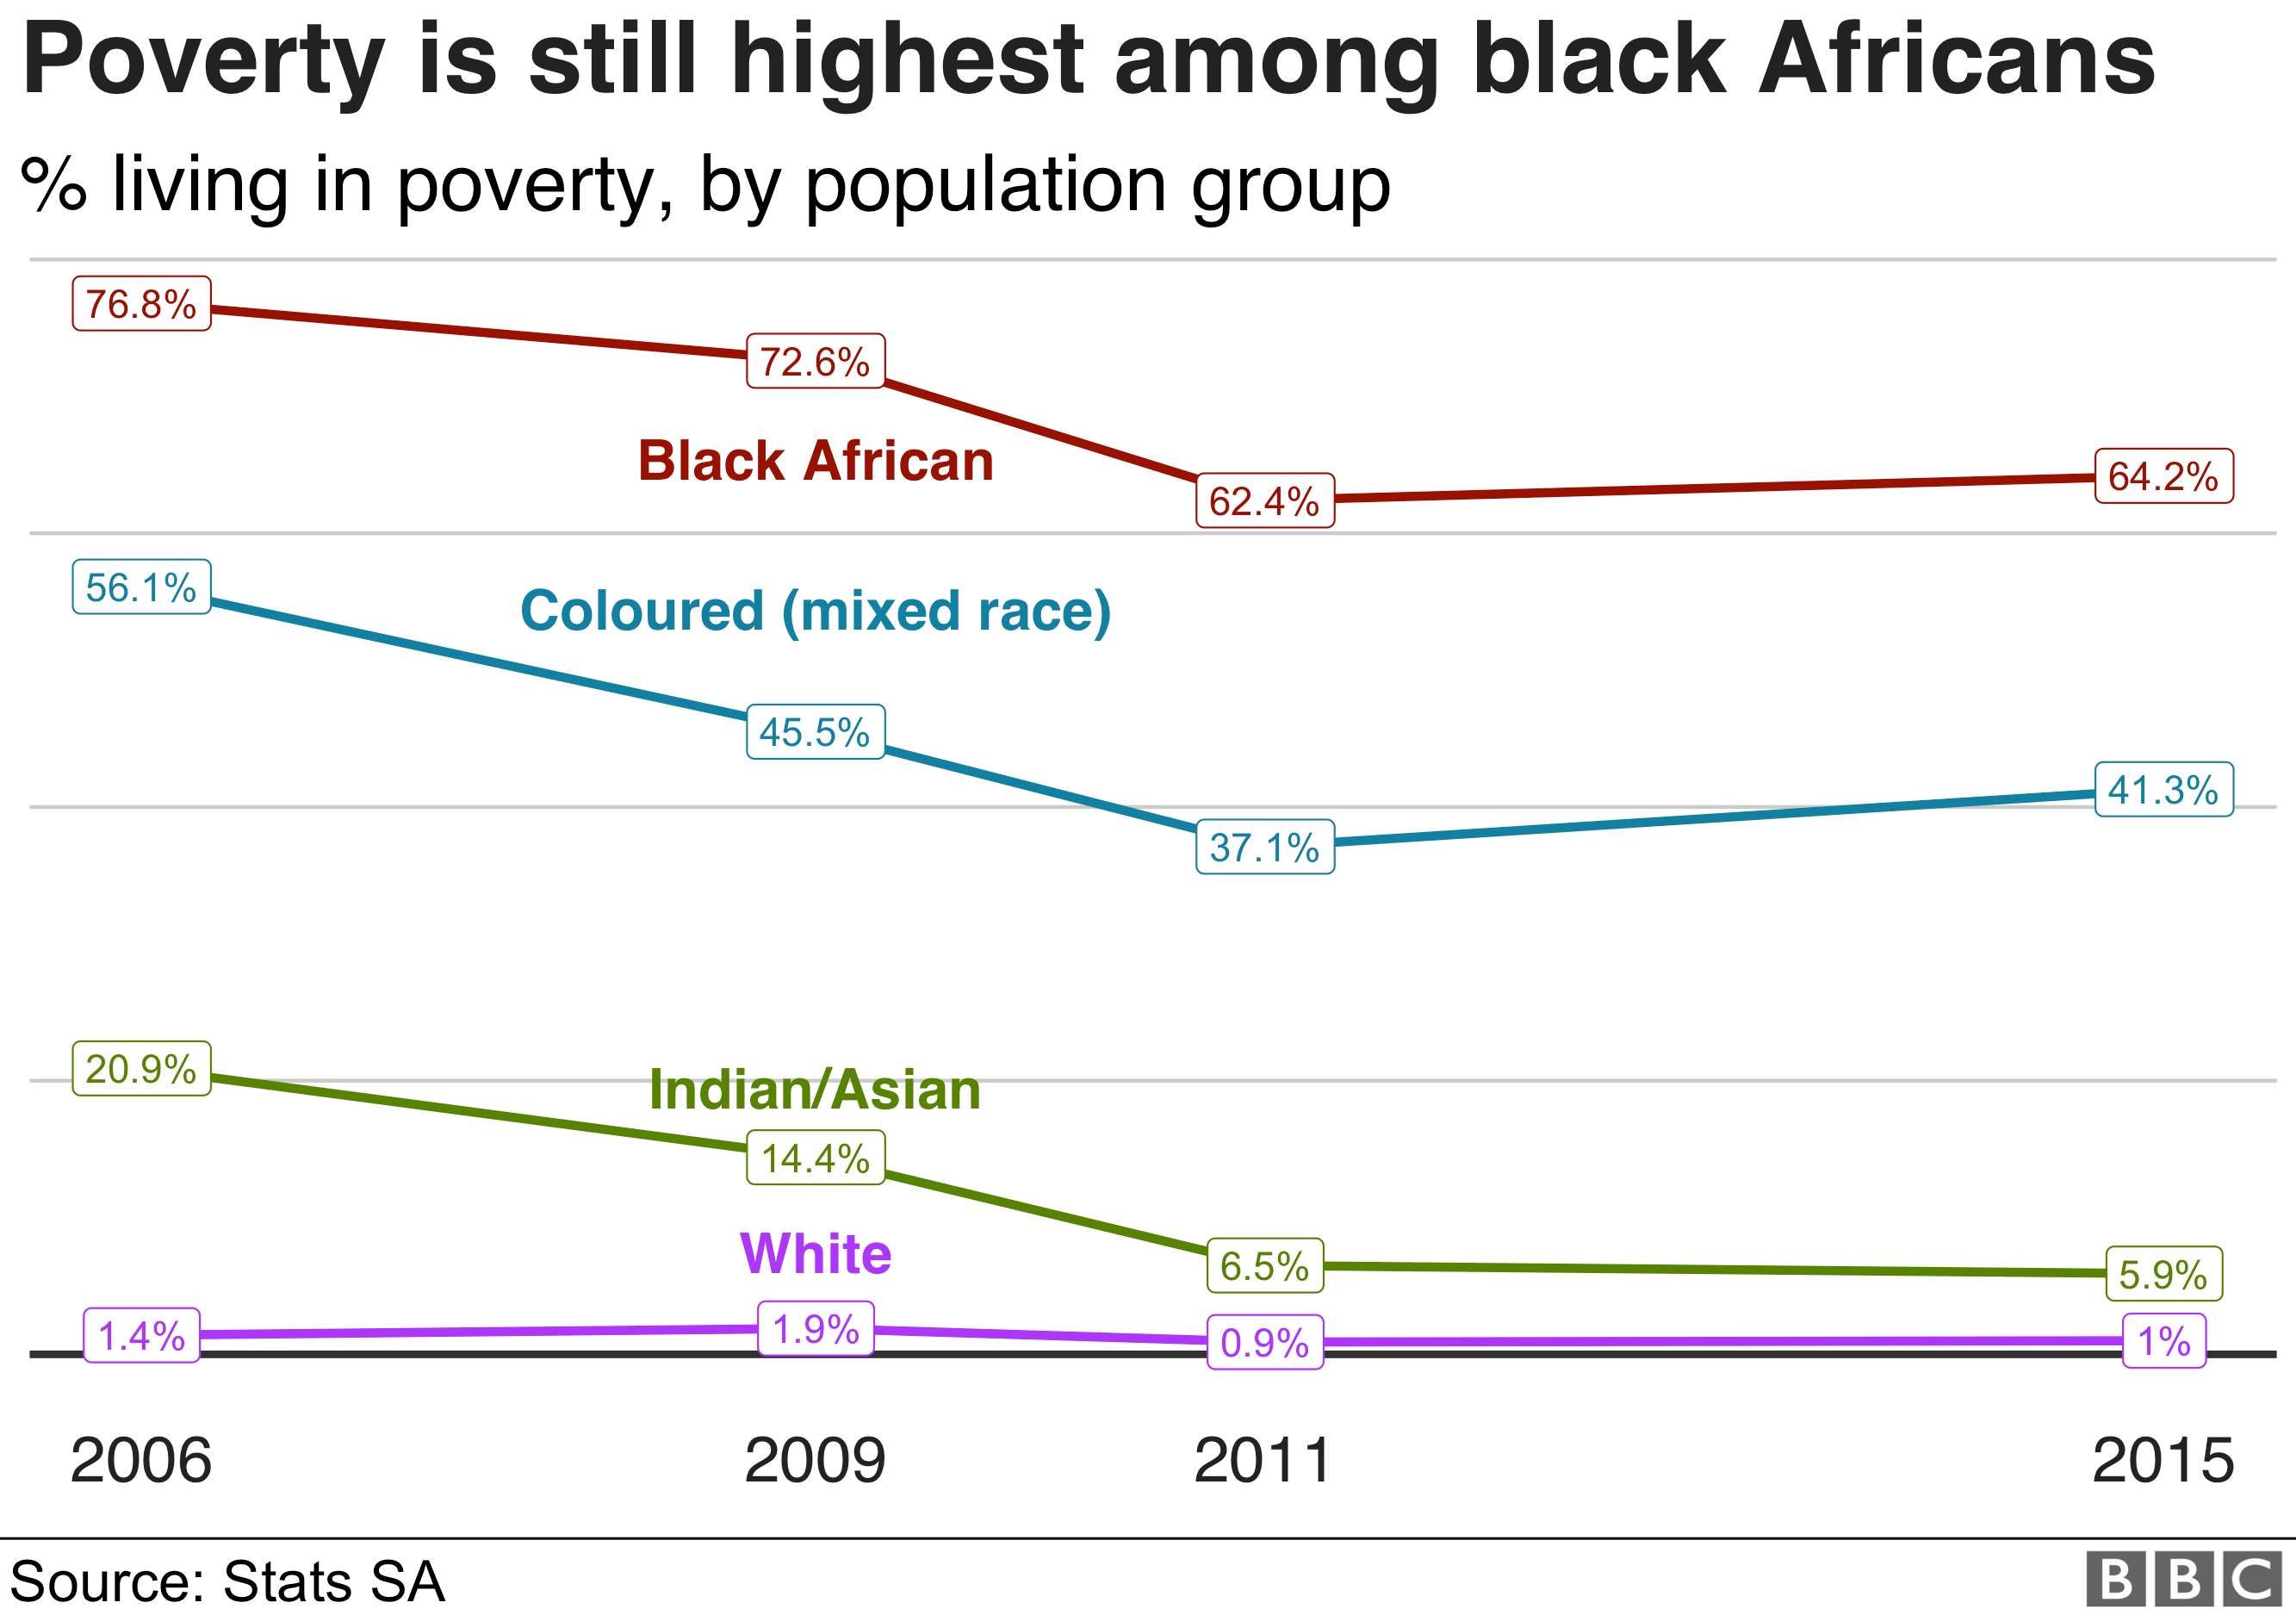 Chart shows poverty rates among population groups